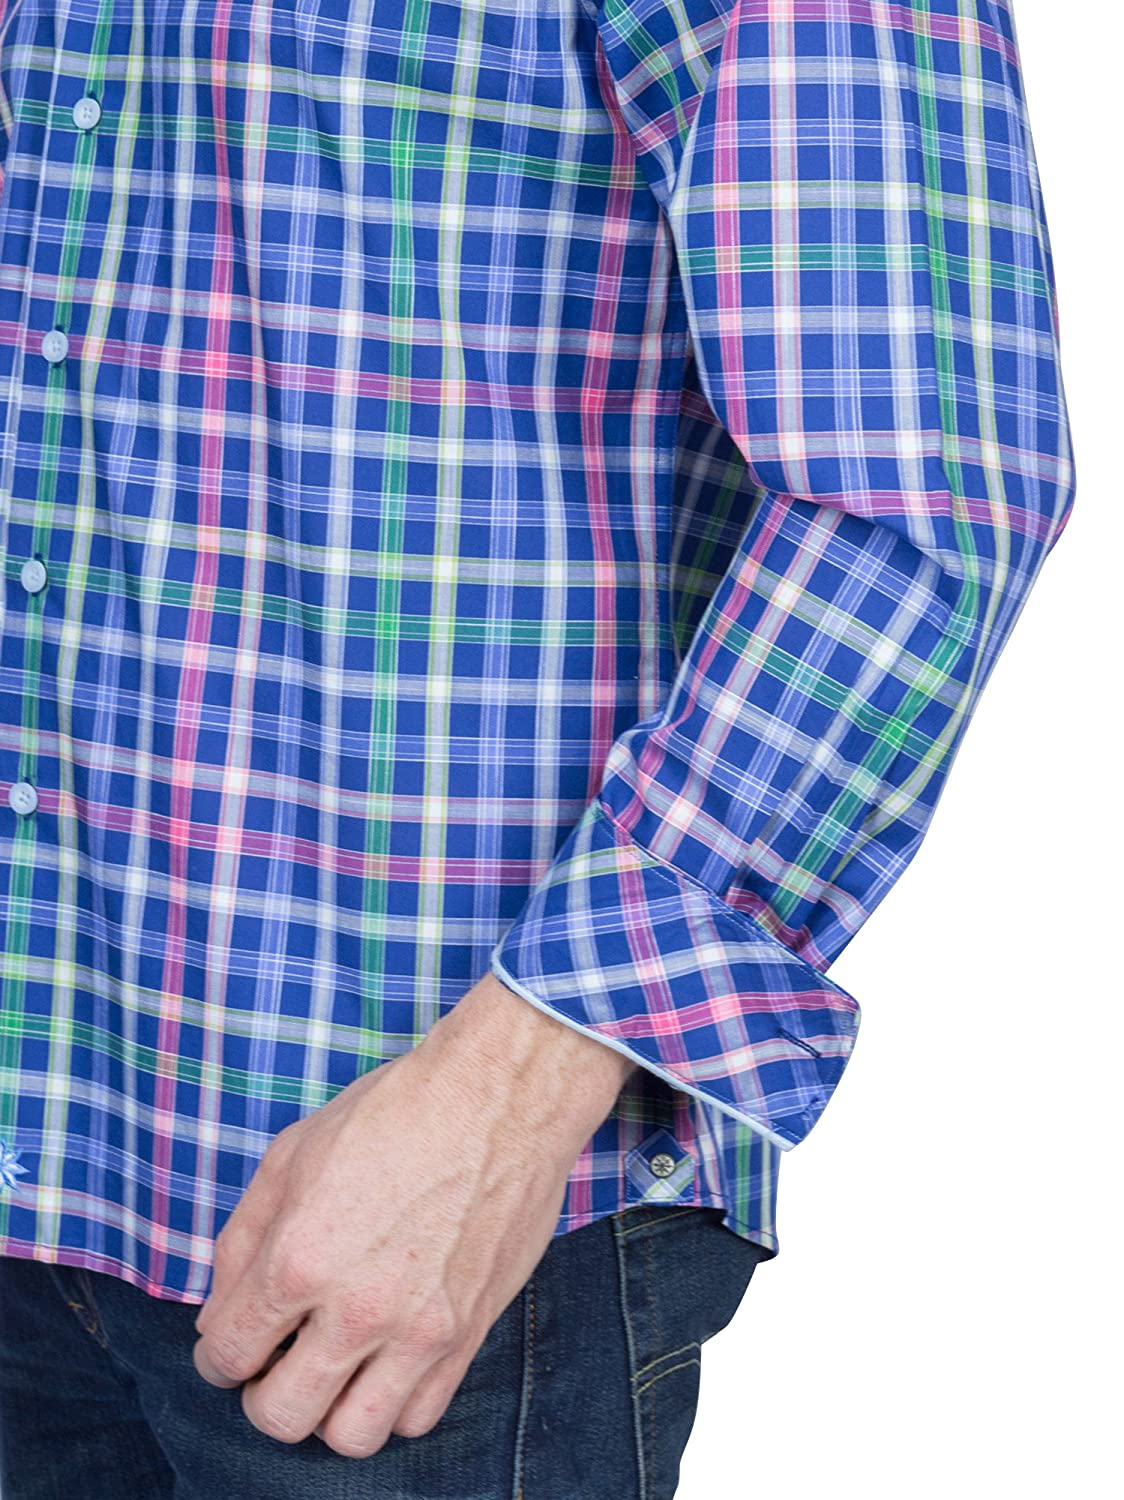 6d534470 Thaddeus Frank Men's Plaid Long Sleeve French Button Down Cotton Shirt with  Cutaway Collar, Bright Blues, L at Amazon Men's Clothing store: